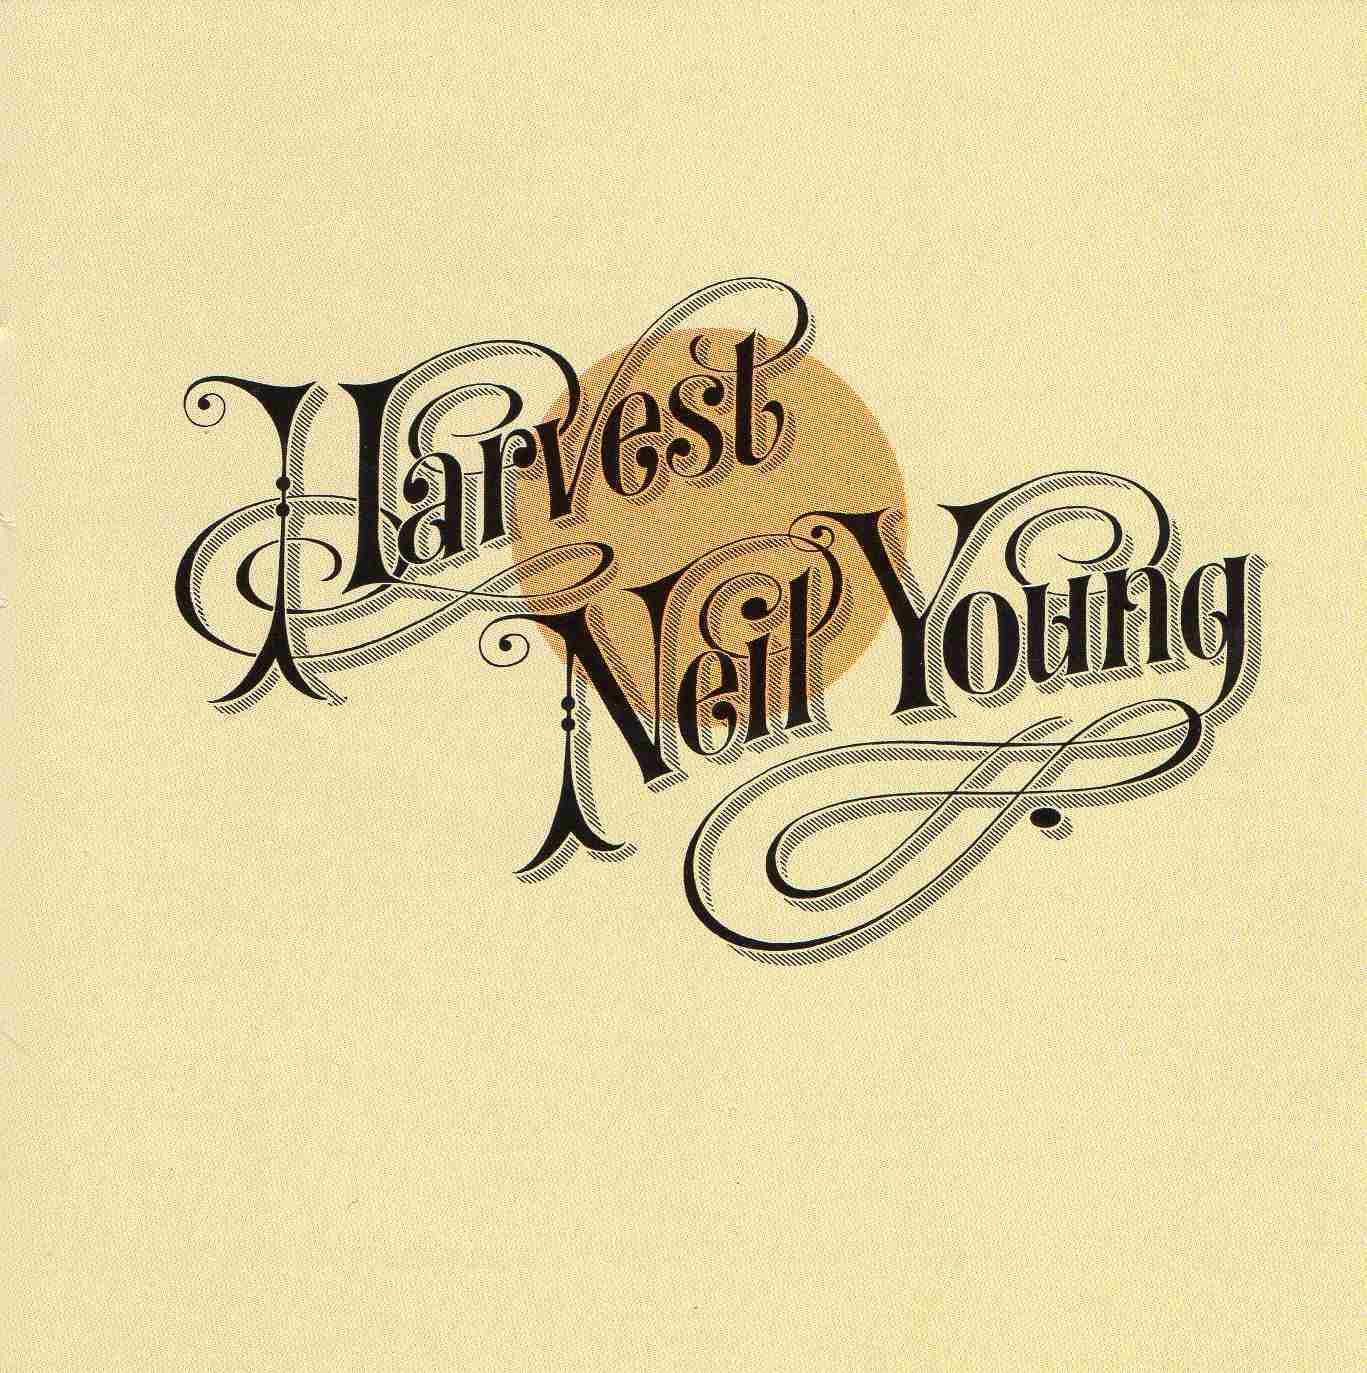 「Harvest」Neil Young_d0335541_18243734.jpg